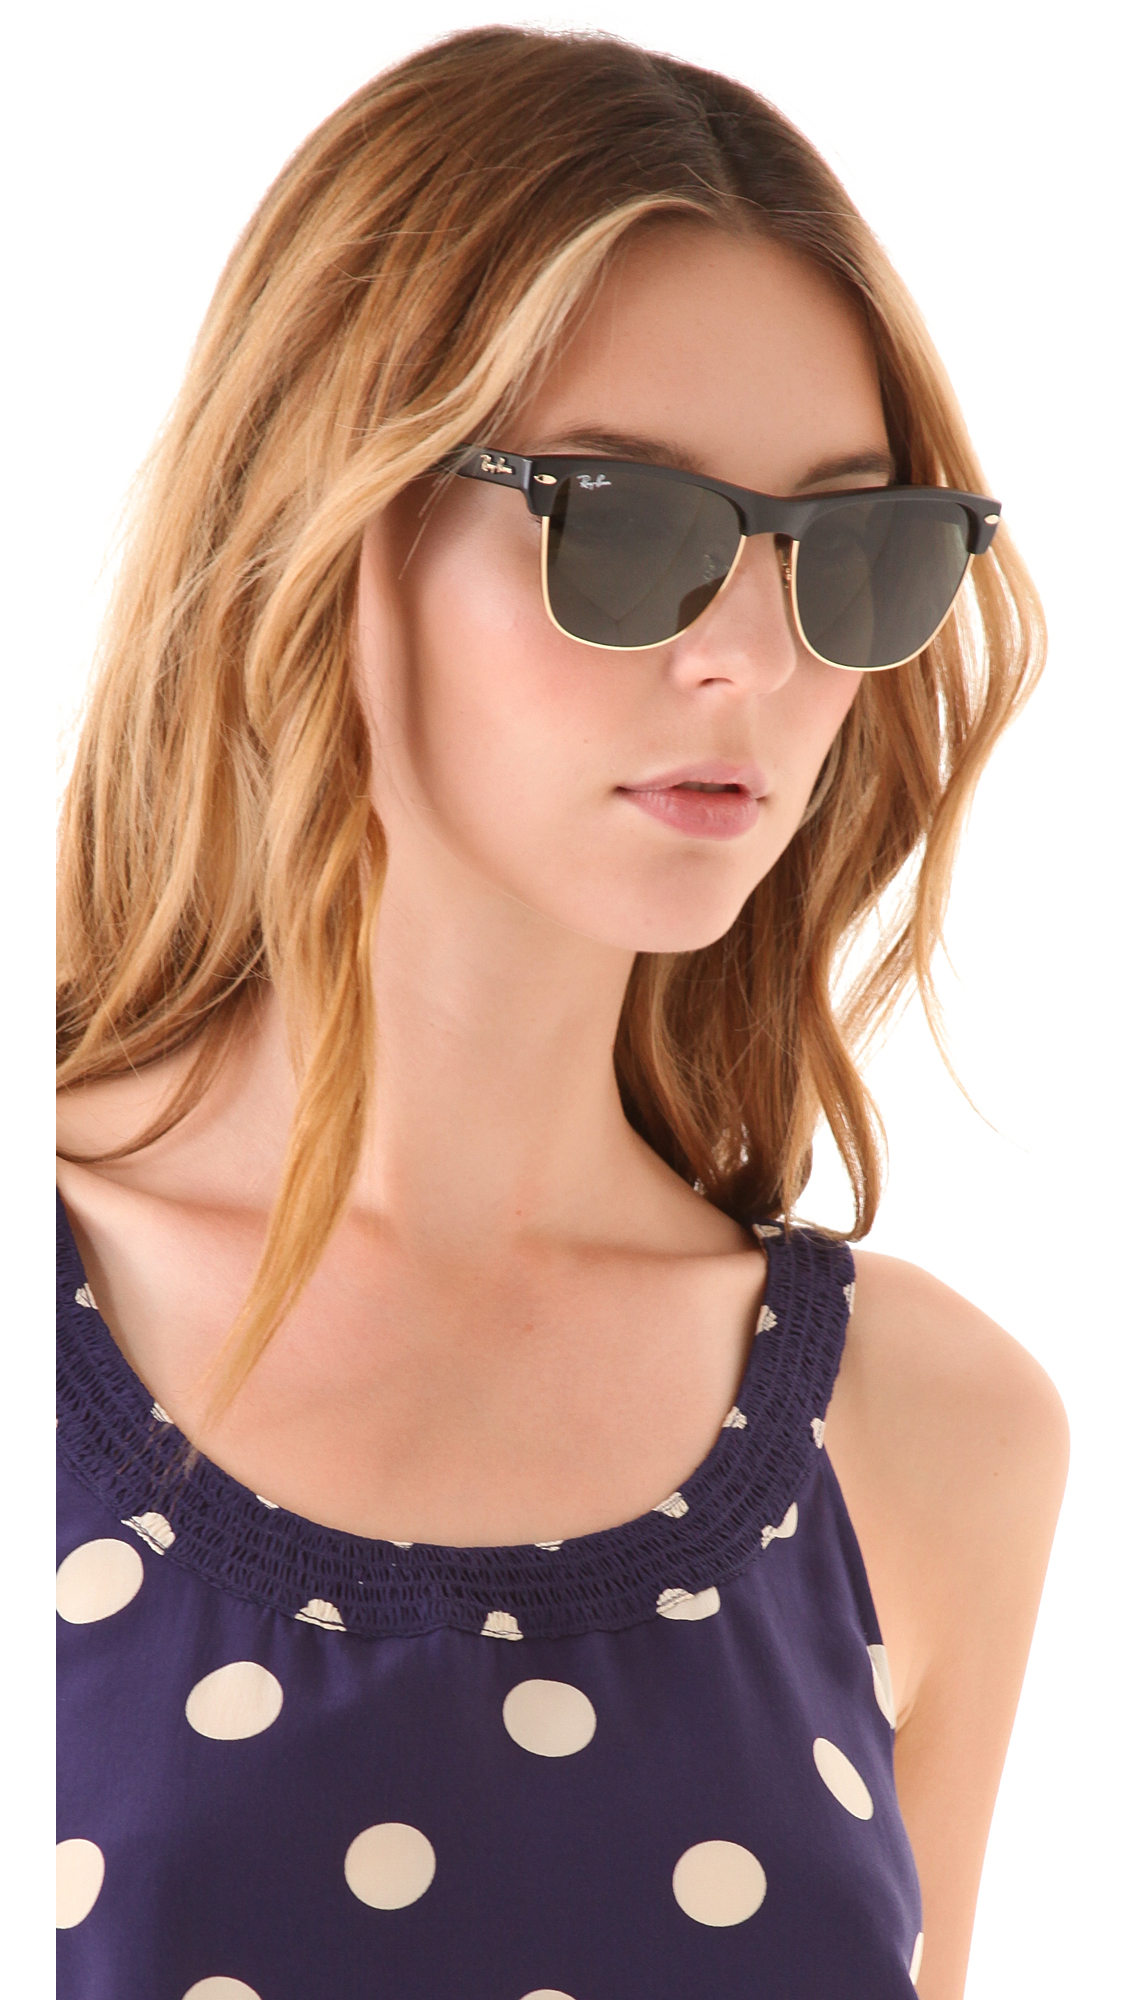 27bb9deaa ray ban clubmaster women - Holly's Restaurant and Pub